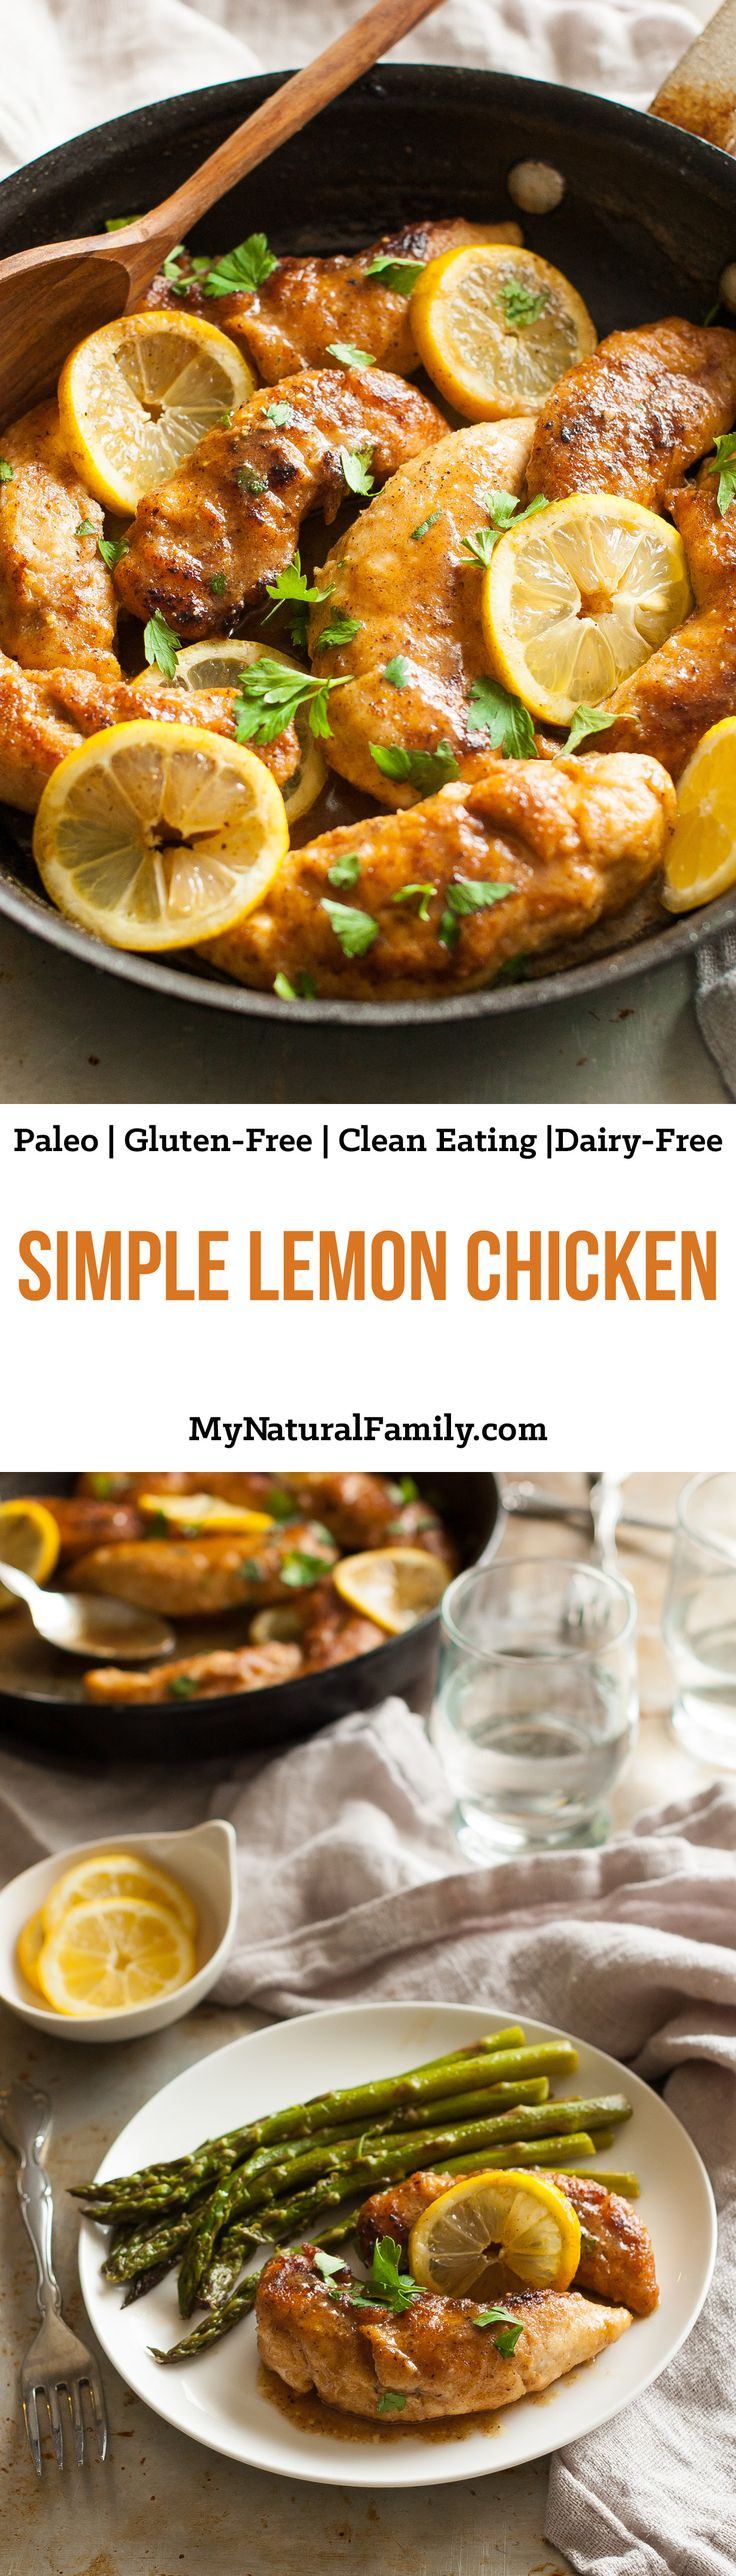 Clean Eating Lemon Chicken Recipe